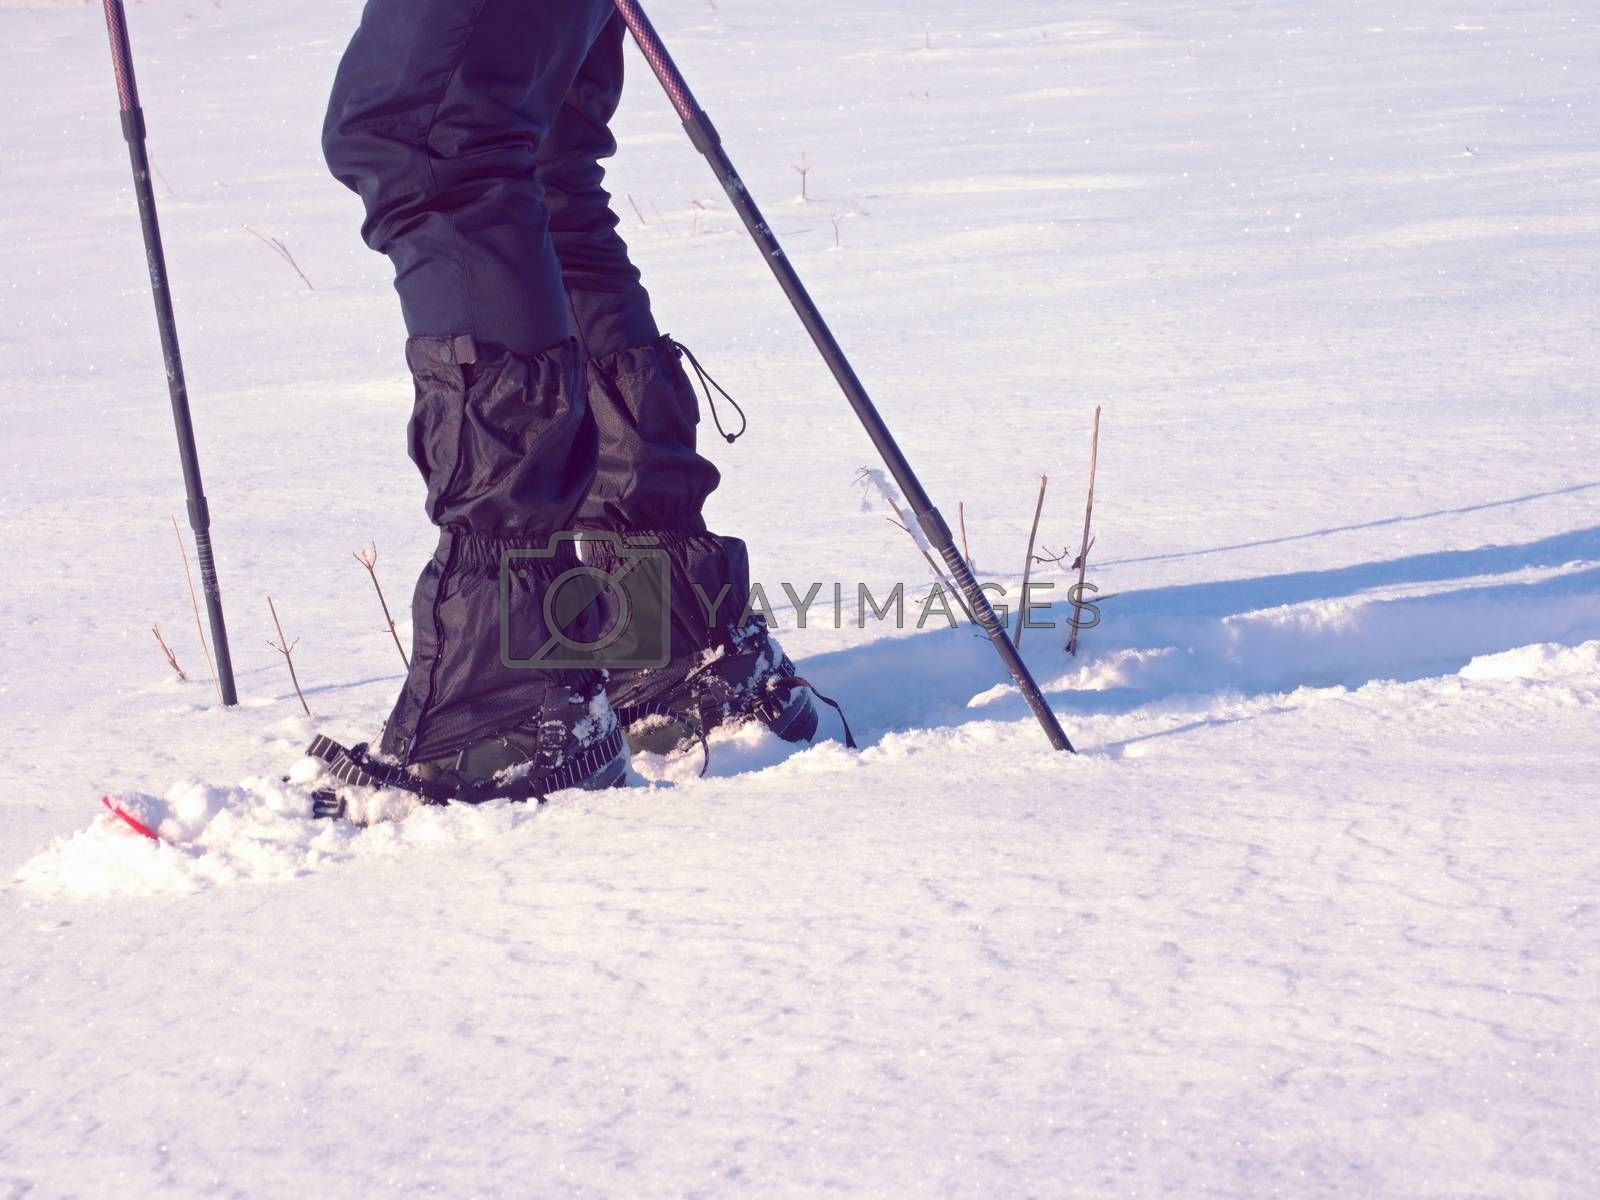 Man legs with snowshoes walk in snow. Detail of winter hike in snowdrift, snowshoeing with trekking poles and shoe cover in powder snow. Red plastic snowshoes.